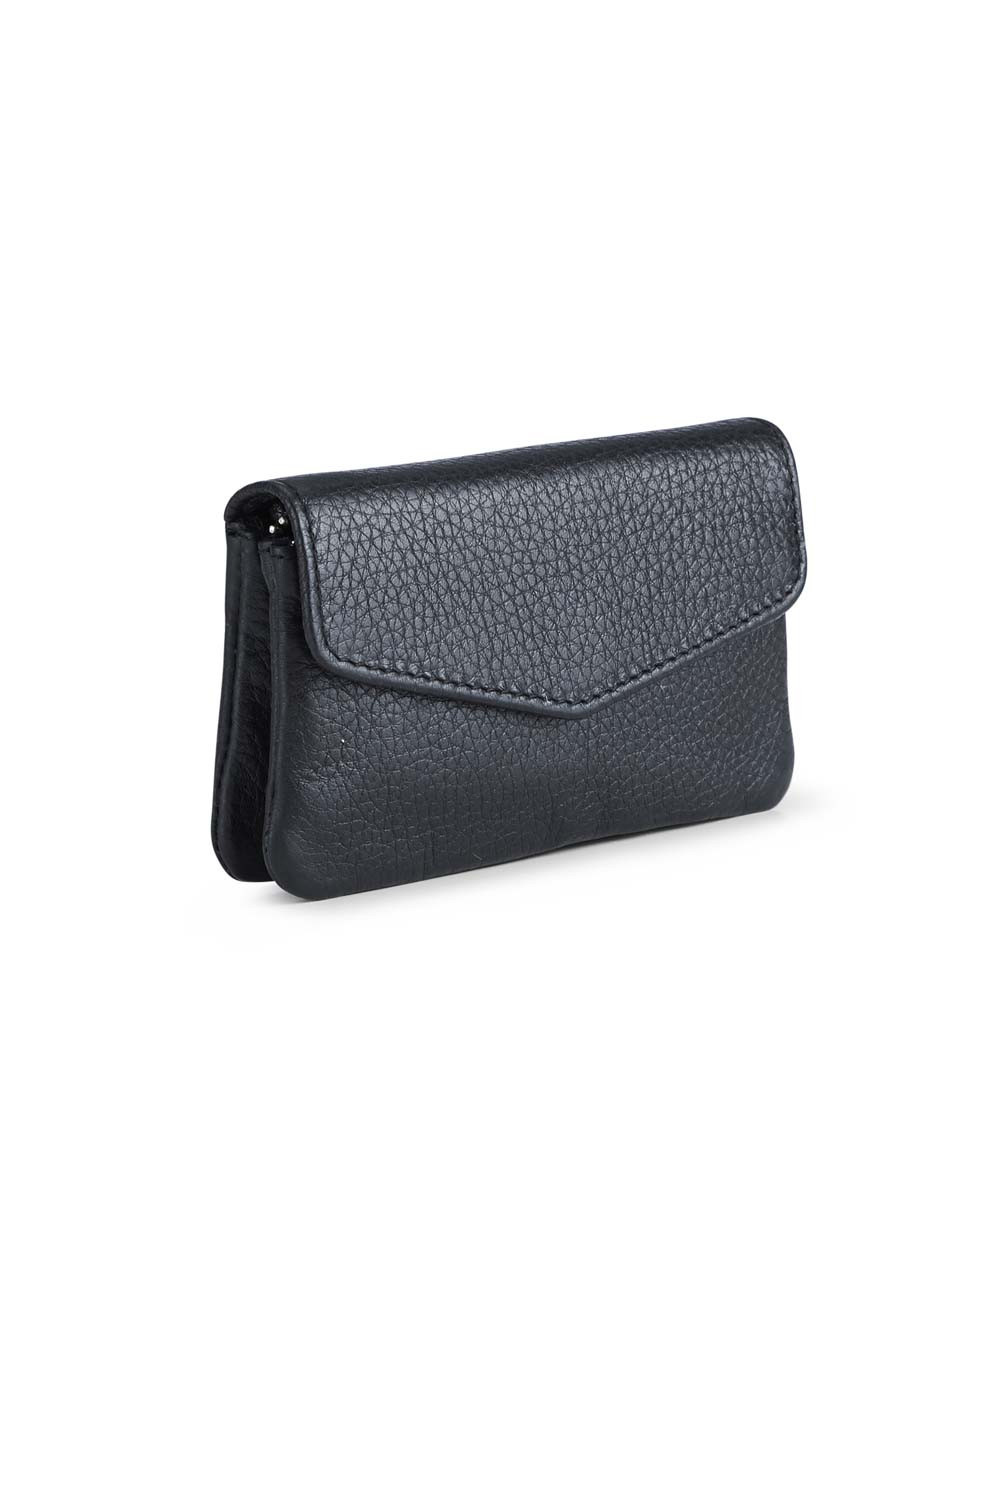 Faith Coin Purse Grain - Black-2